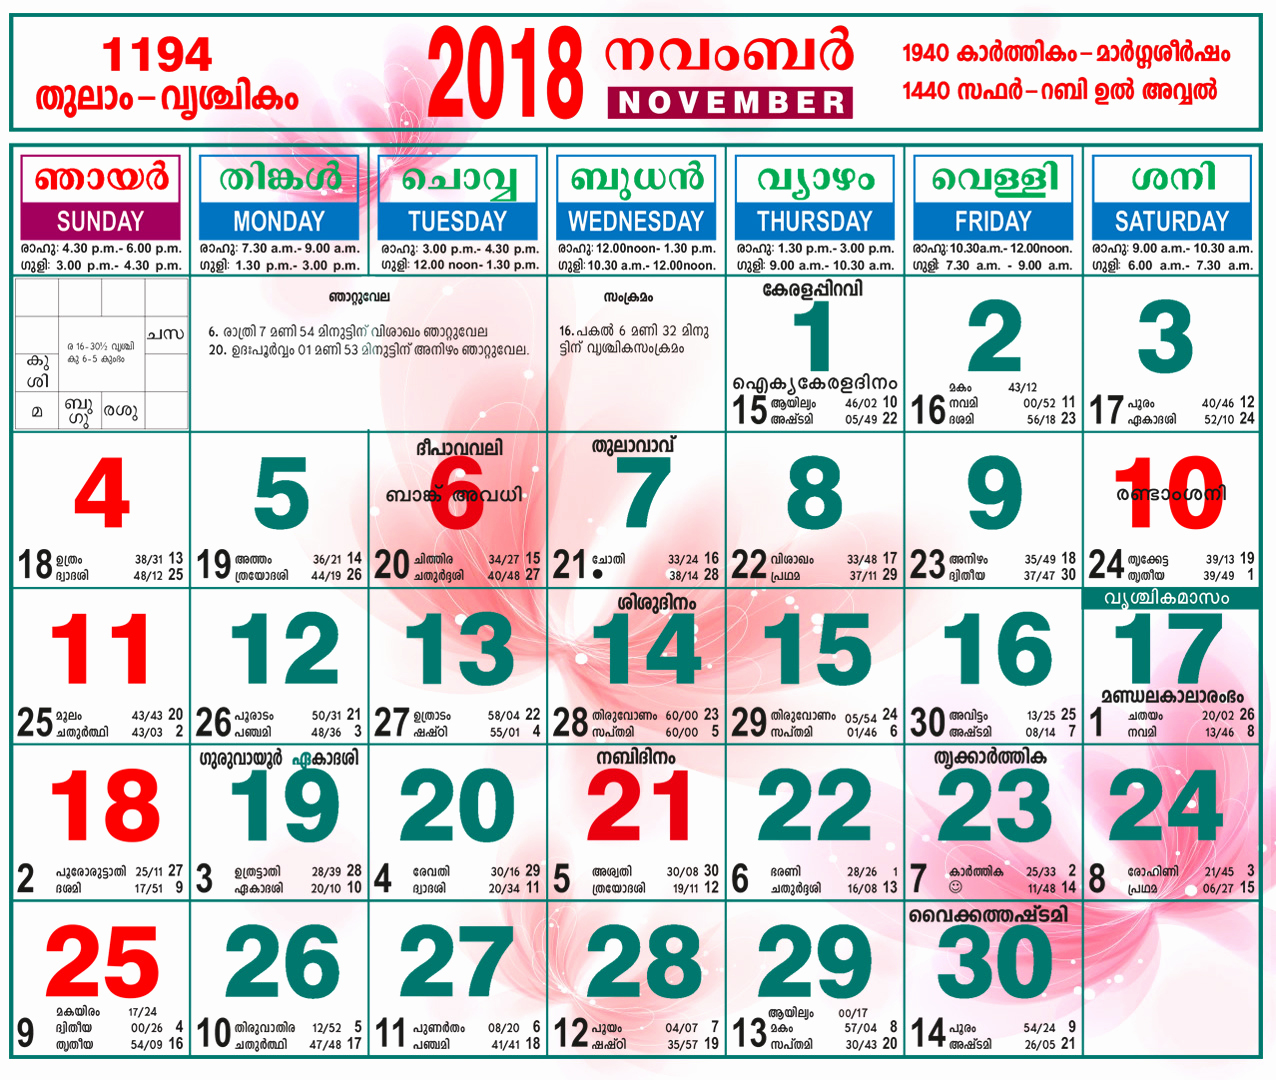 November 2018 Calendar Malayalam within October 2018 Calendar Malayalam